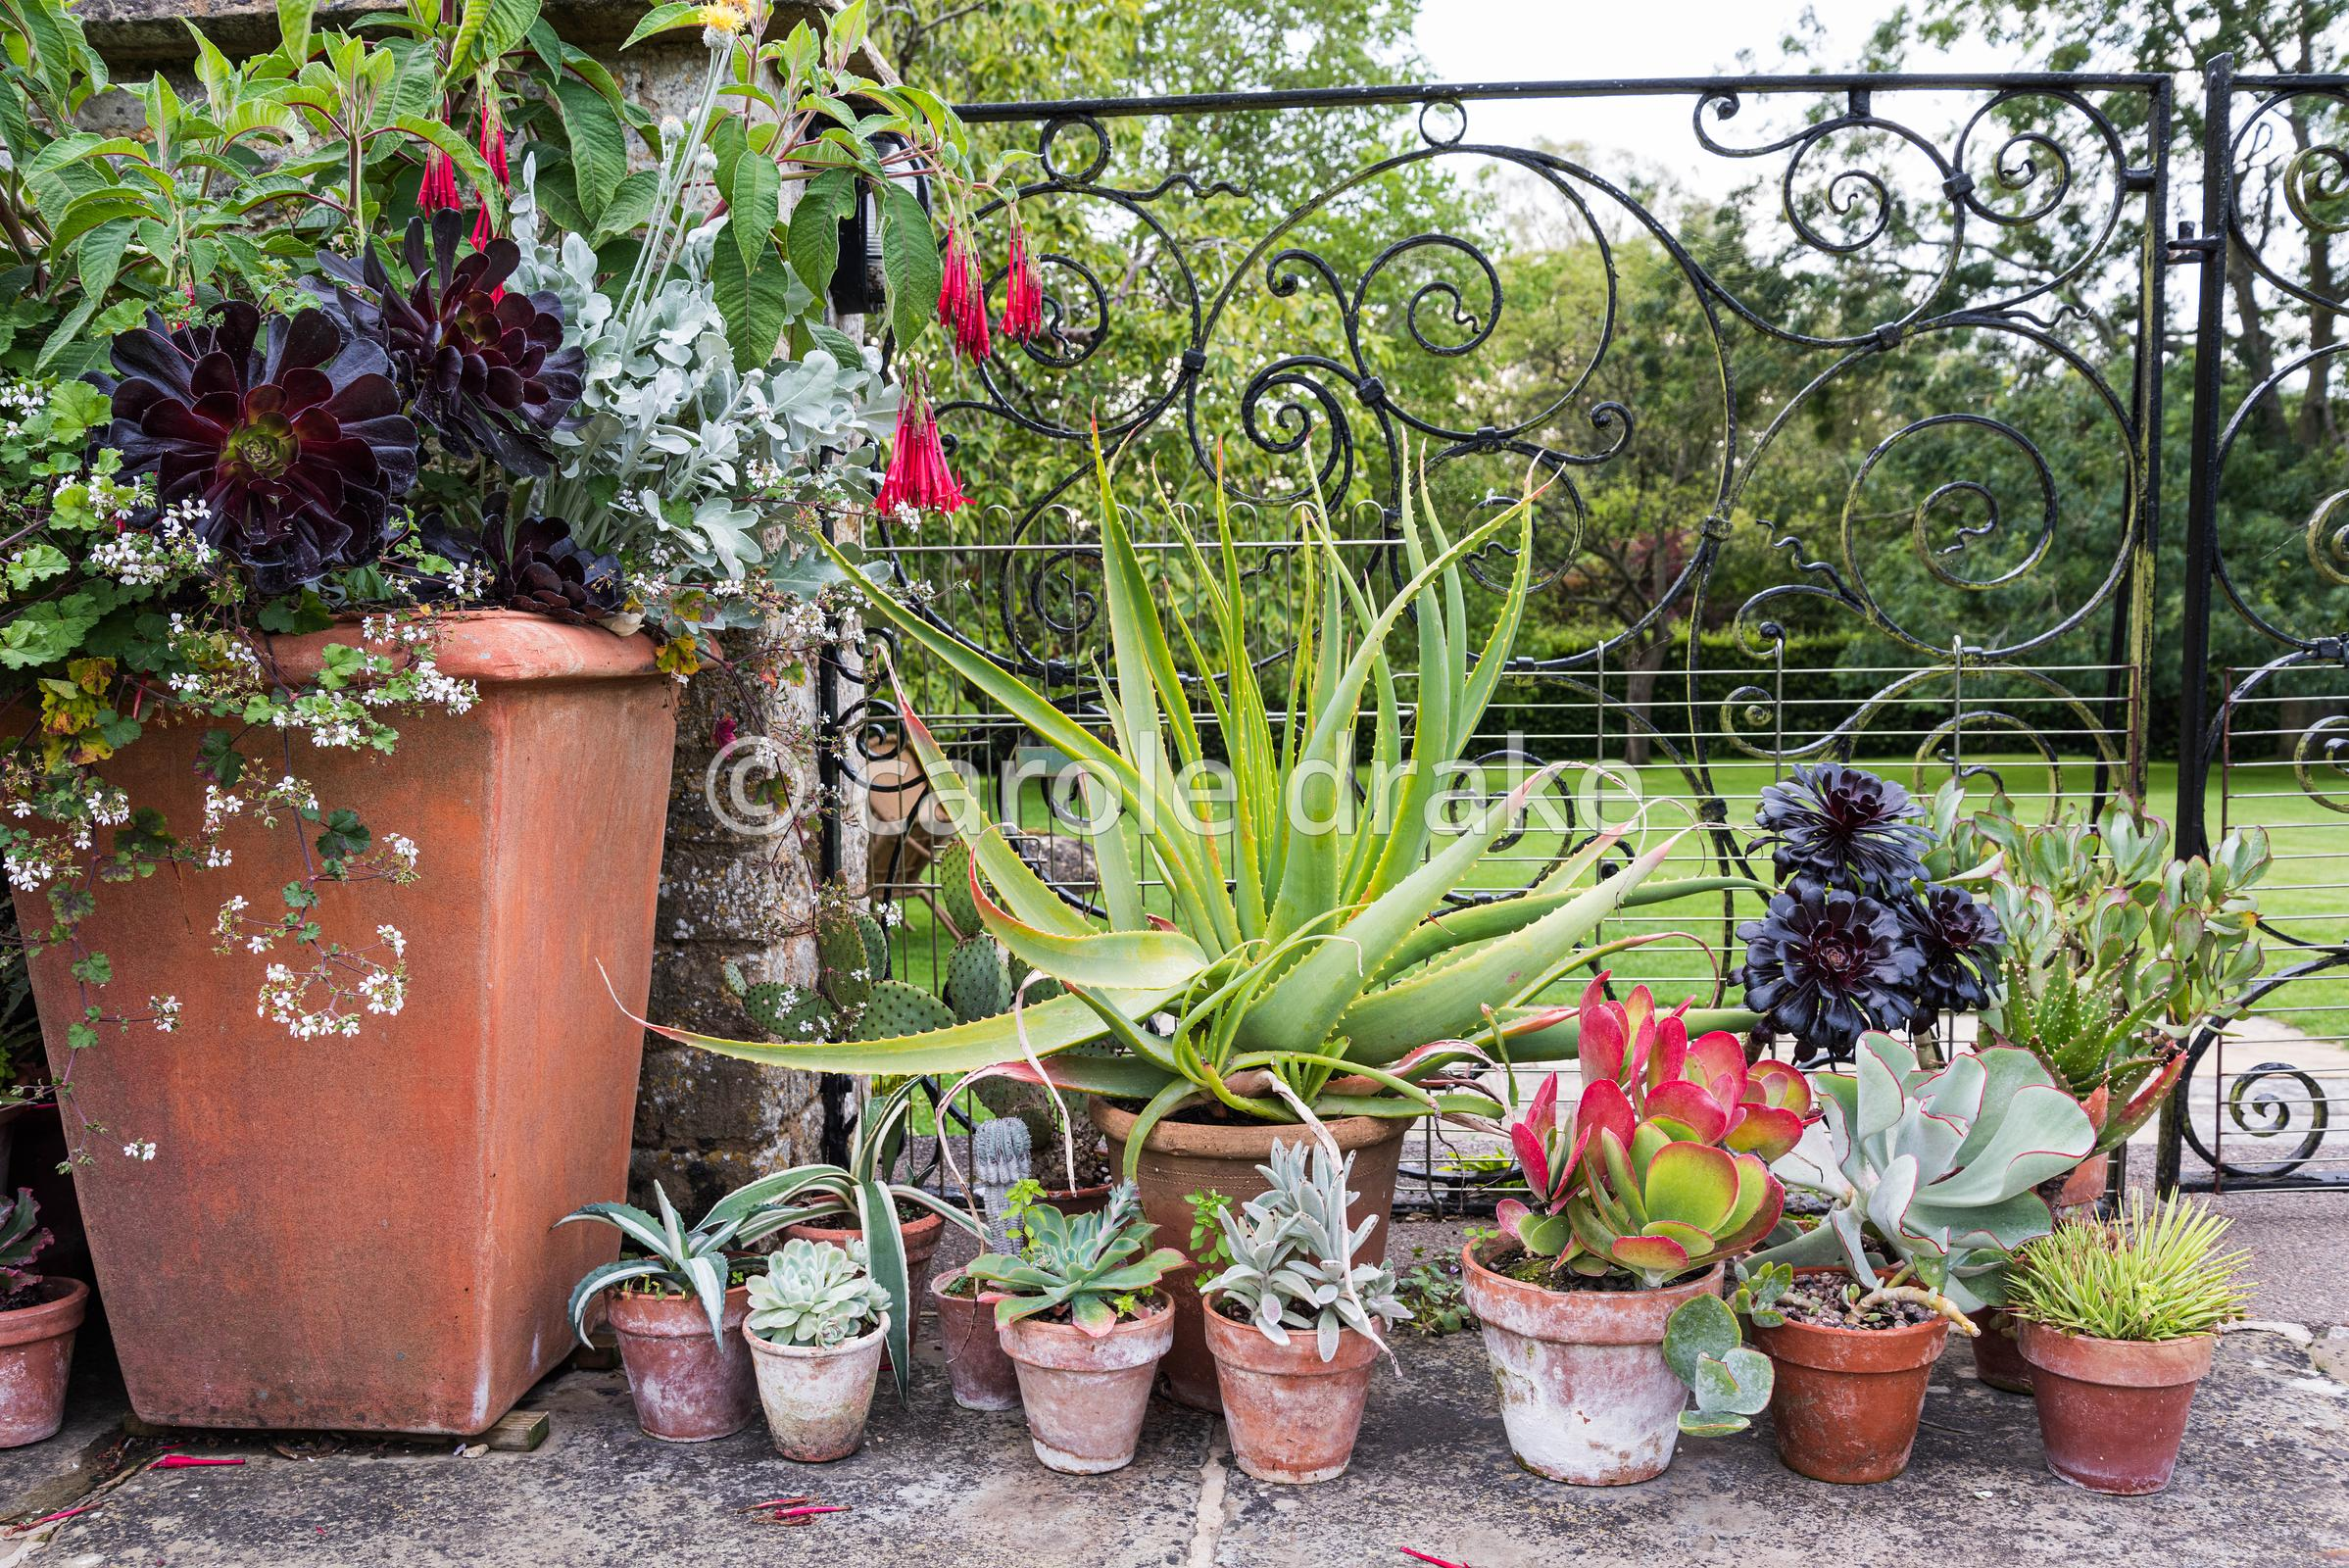 Pots of succulents beside a container planted with Aeonium 'Zwartkop', Pelargonium australe and  Fuchsia corymbifolia at Bour...